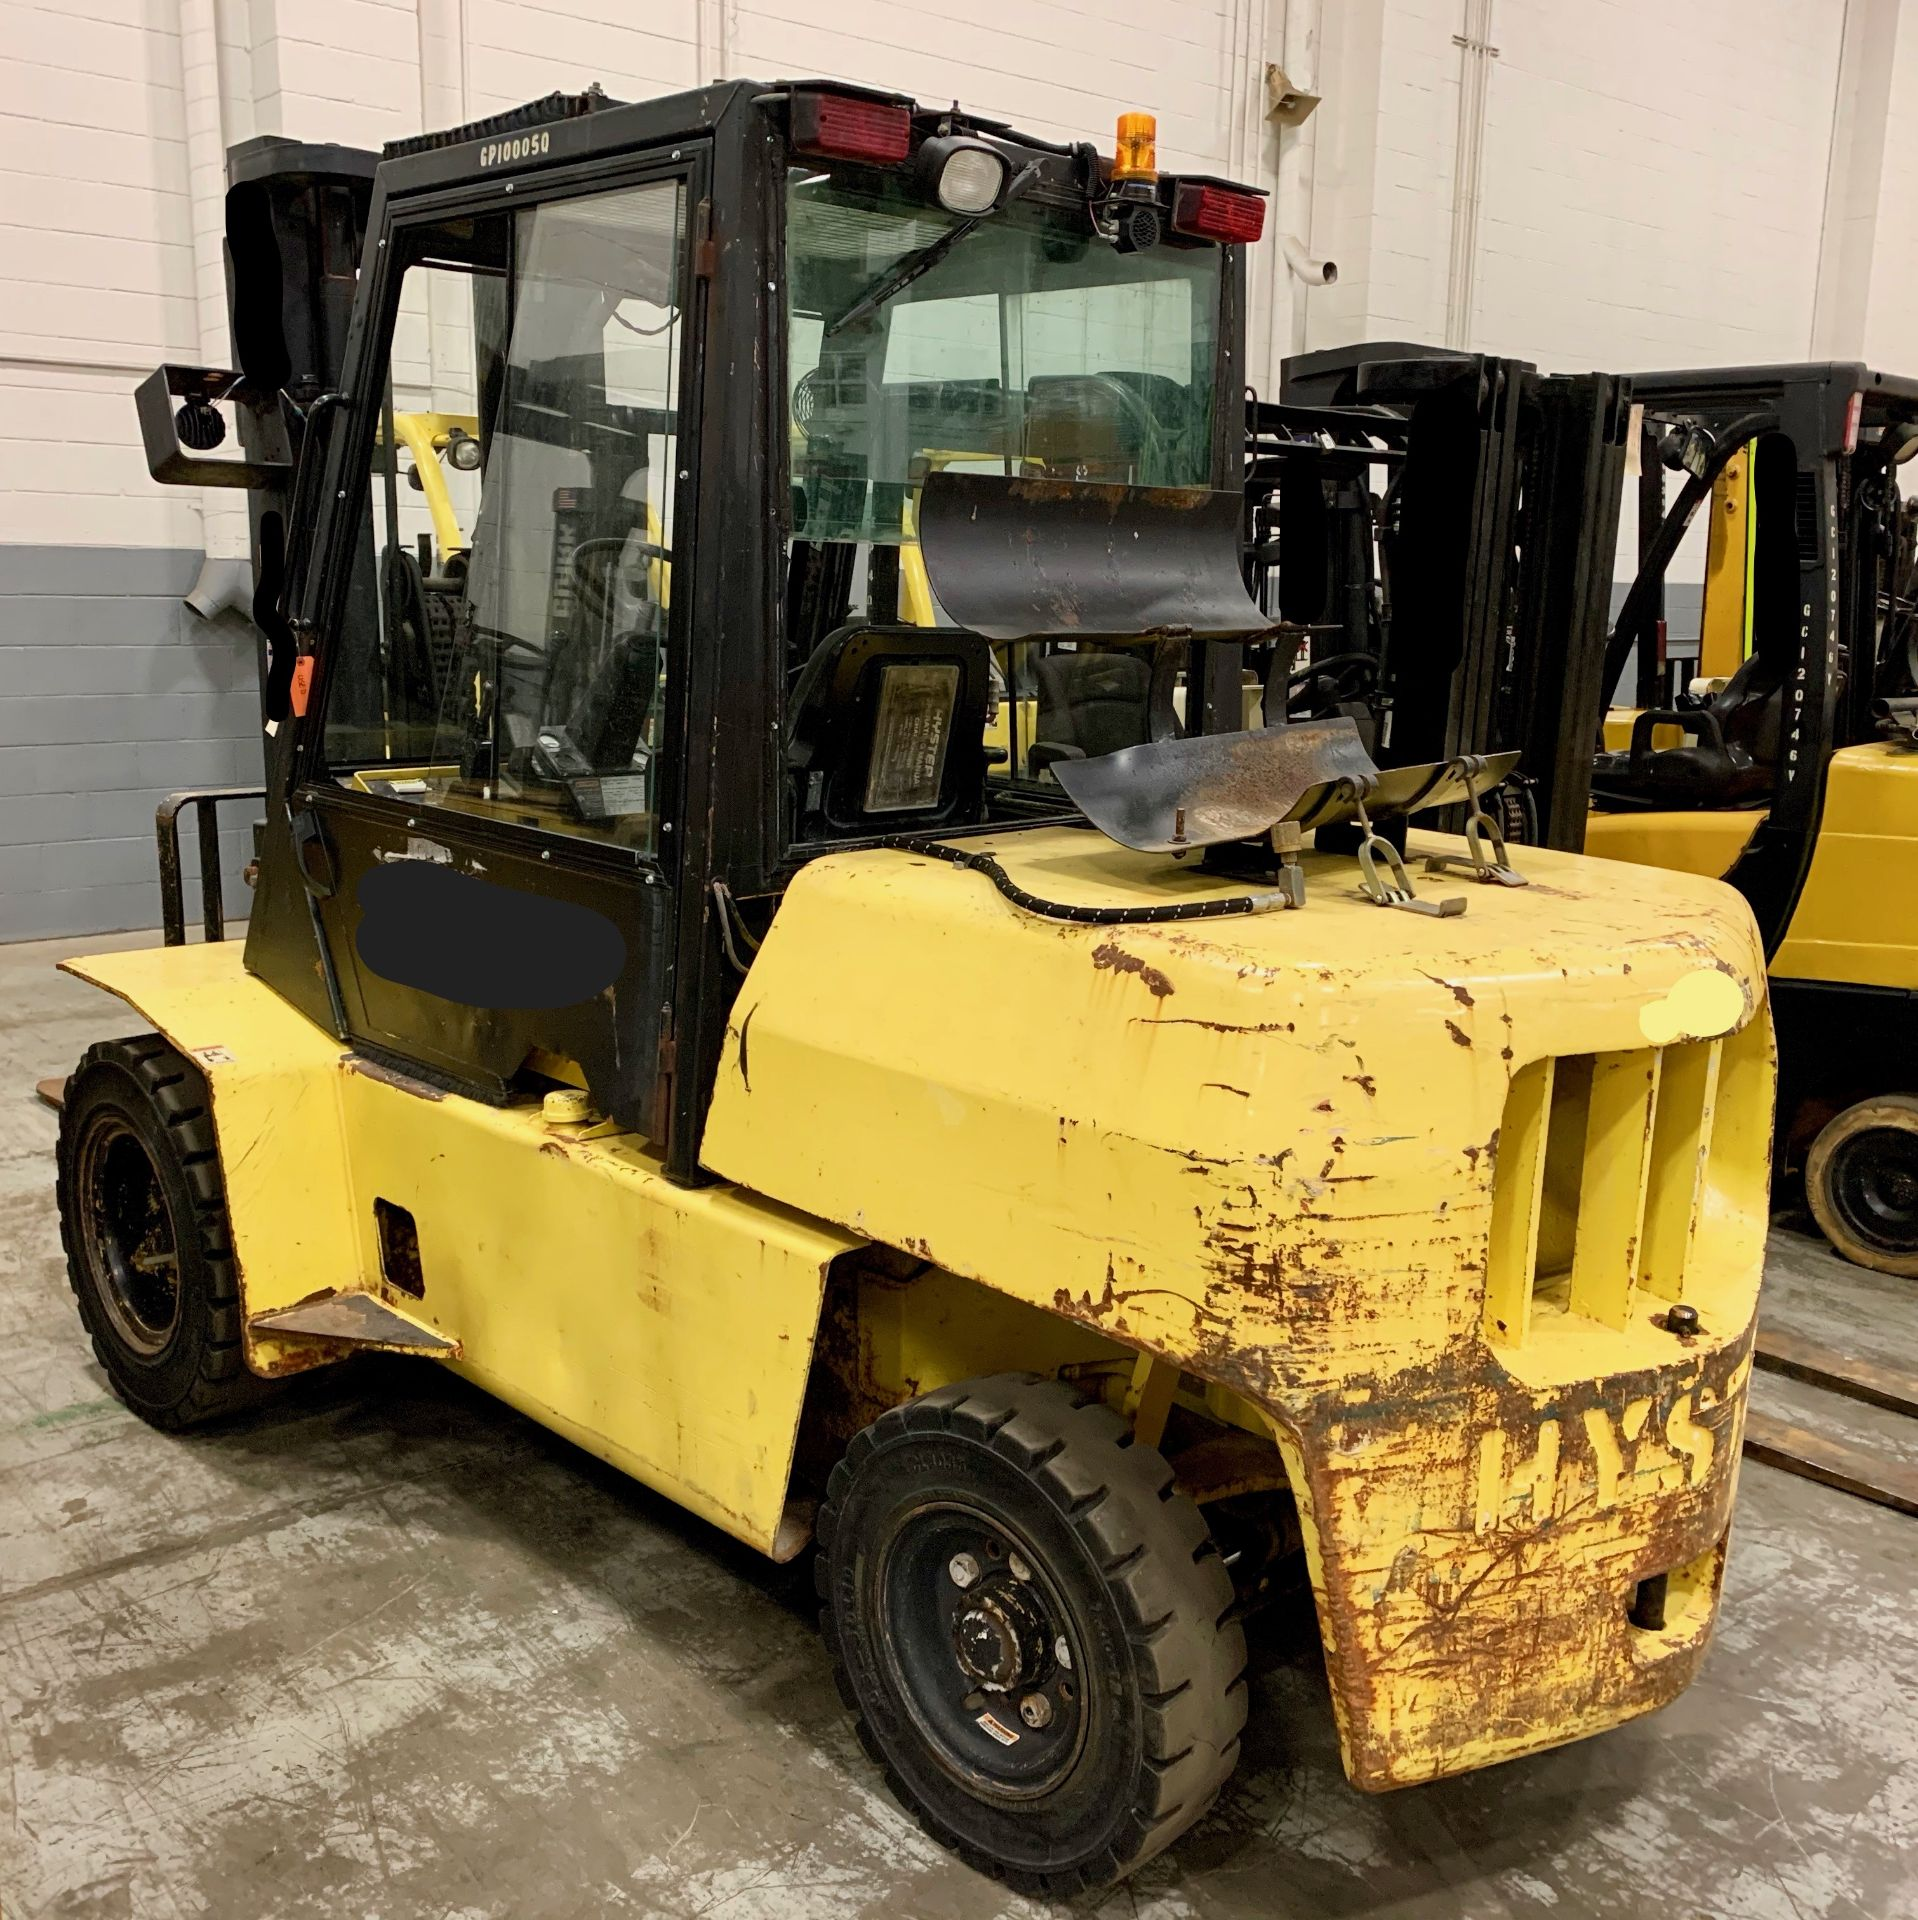 Lot 4A - 1999 HYSTER 10,000-LB. CAP. FORKLIFT, MODEL: H100XL, LPG, PNEUMATIC TIRES, 3-STAGE MAST, 3,450 HRS